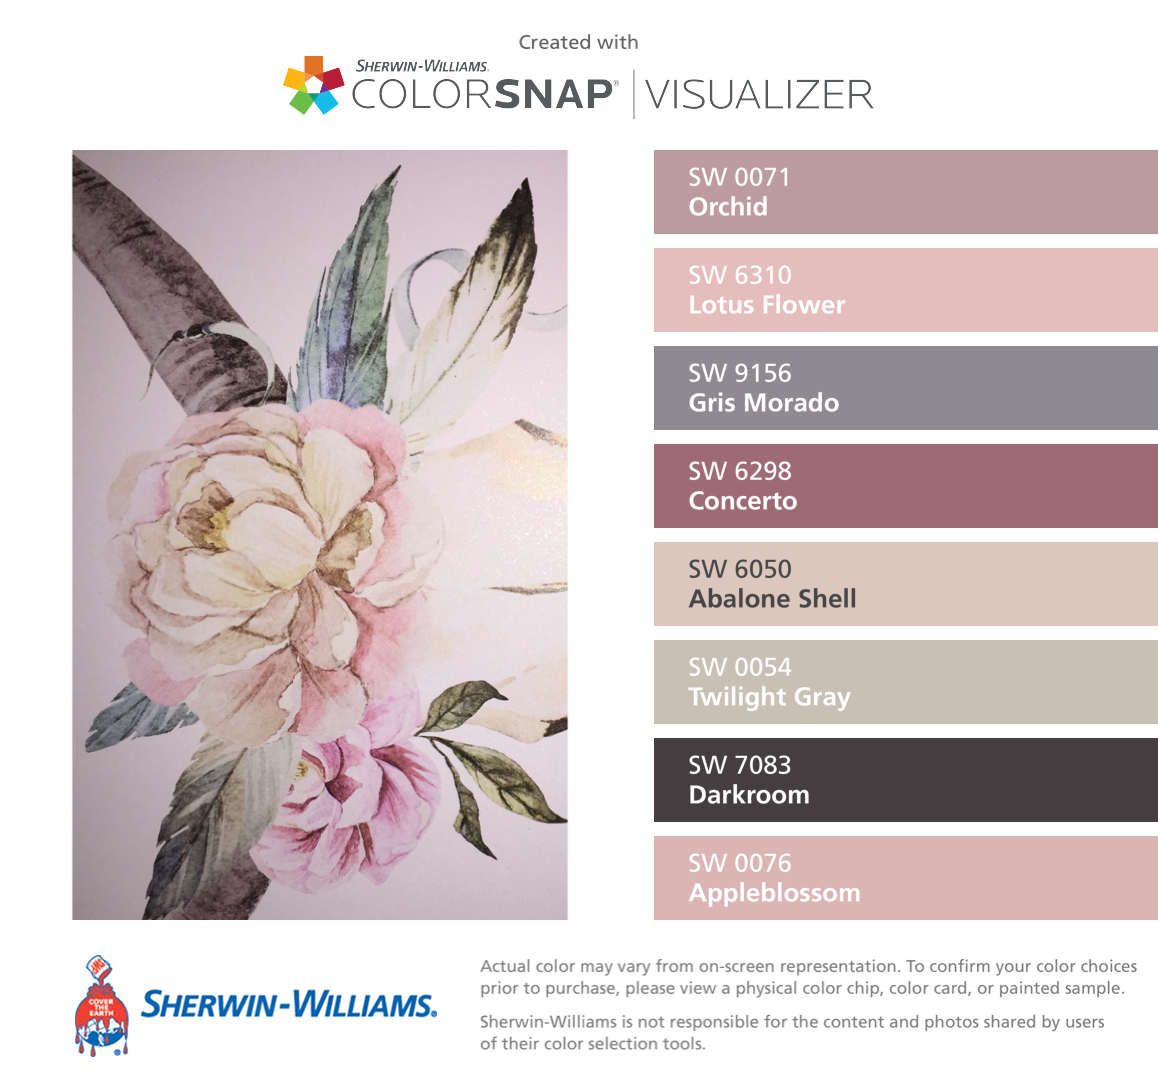 I found these colors with colorsnap visualizer for iphone by i found these colors with colorsnap visualizer for iphone by sherwin williams orchid sw 0071 lotus flower sw 6310 gris morado sw 9156 izmirmasajfo